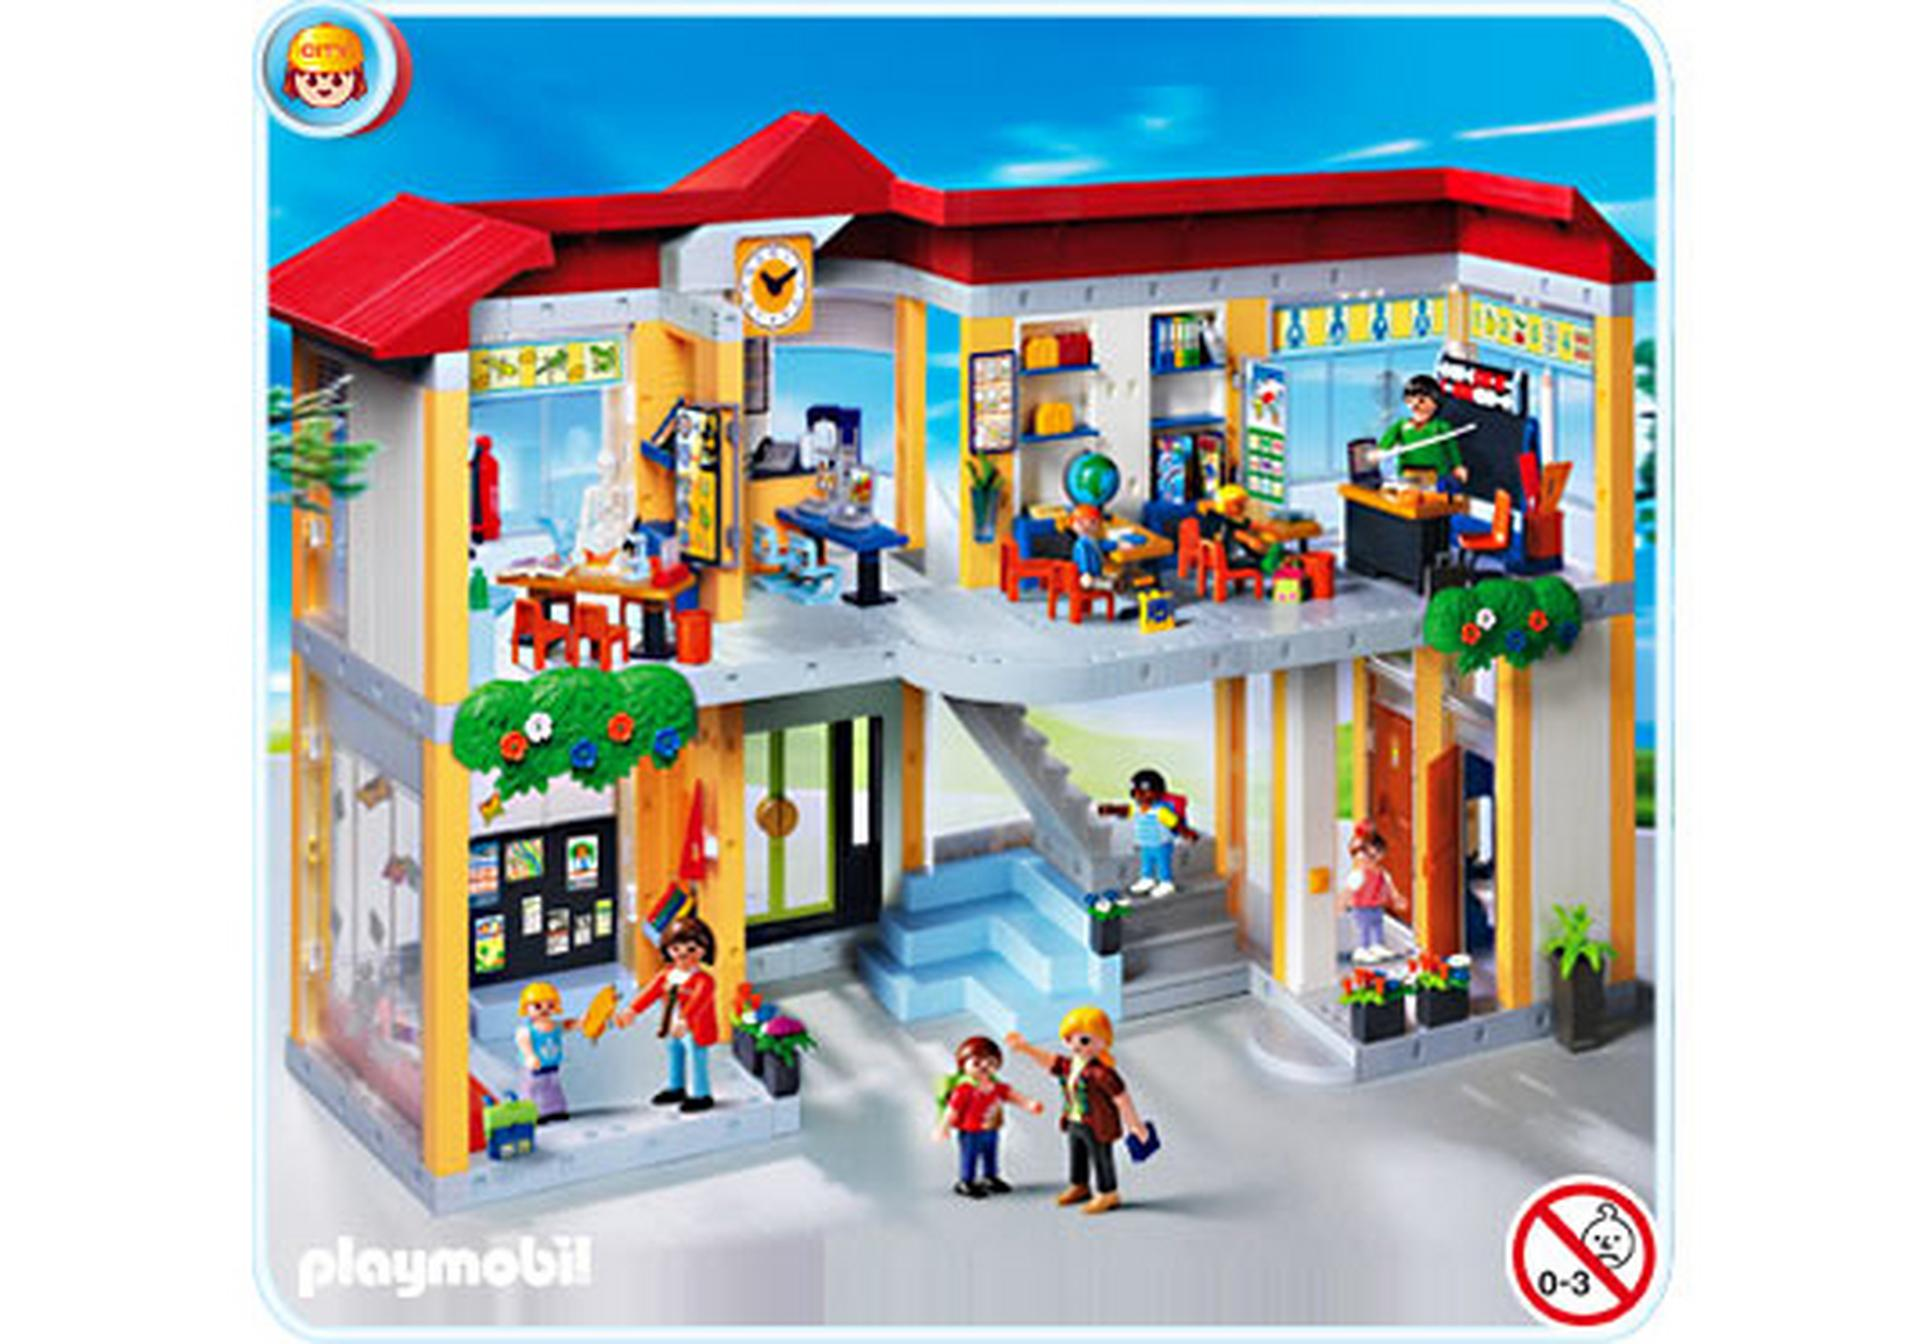 gro e schule mit einrichtung 4324 a playmobil deutschland. Black Bedroom Furniture Sets. Home Design Ideas